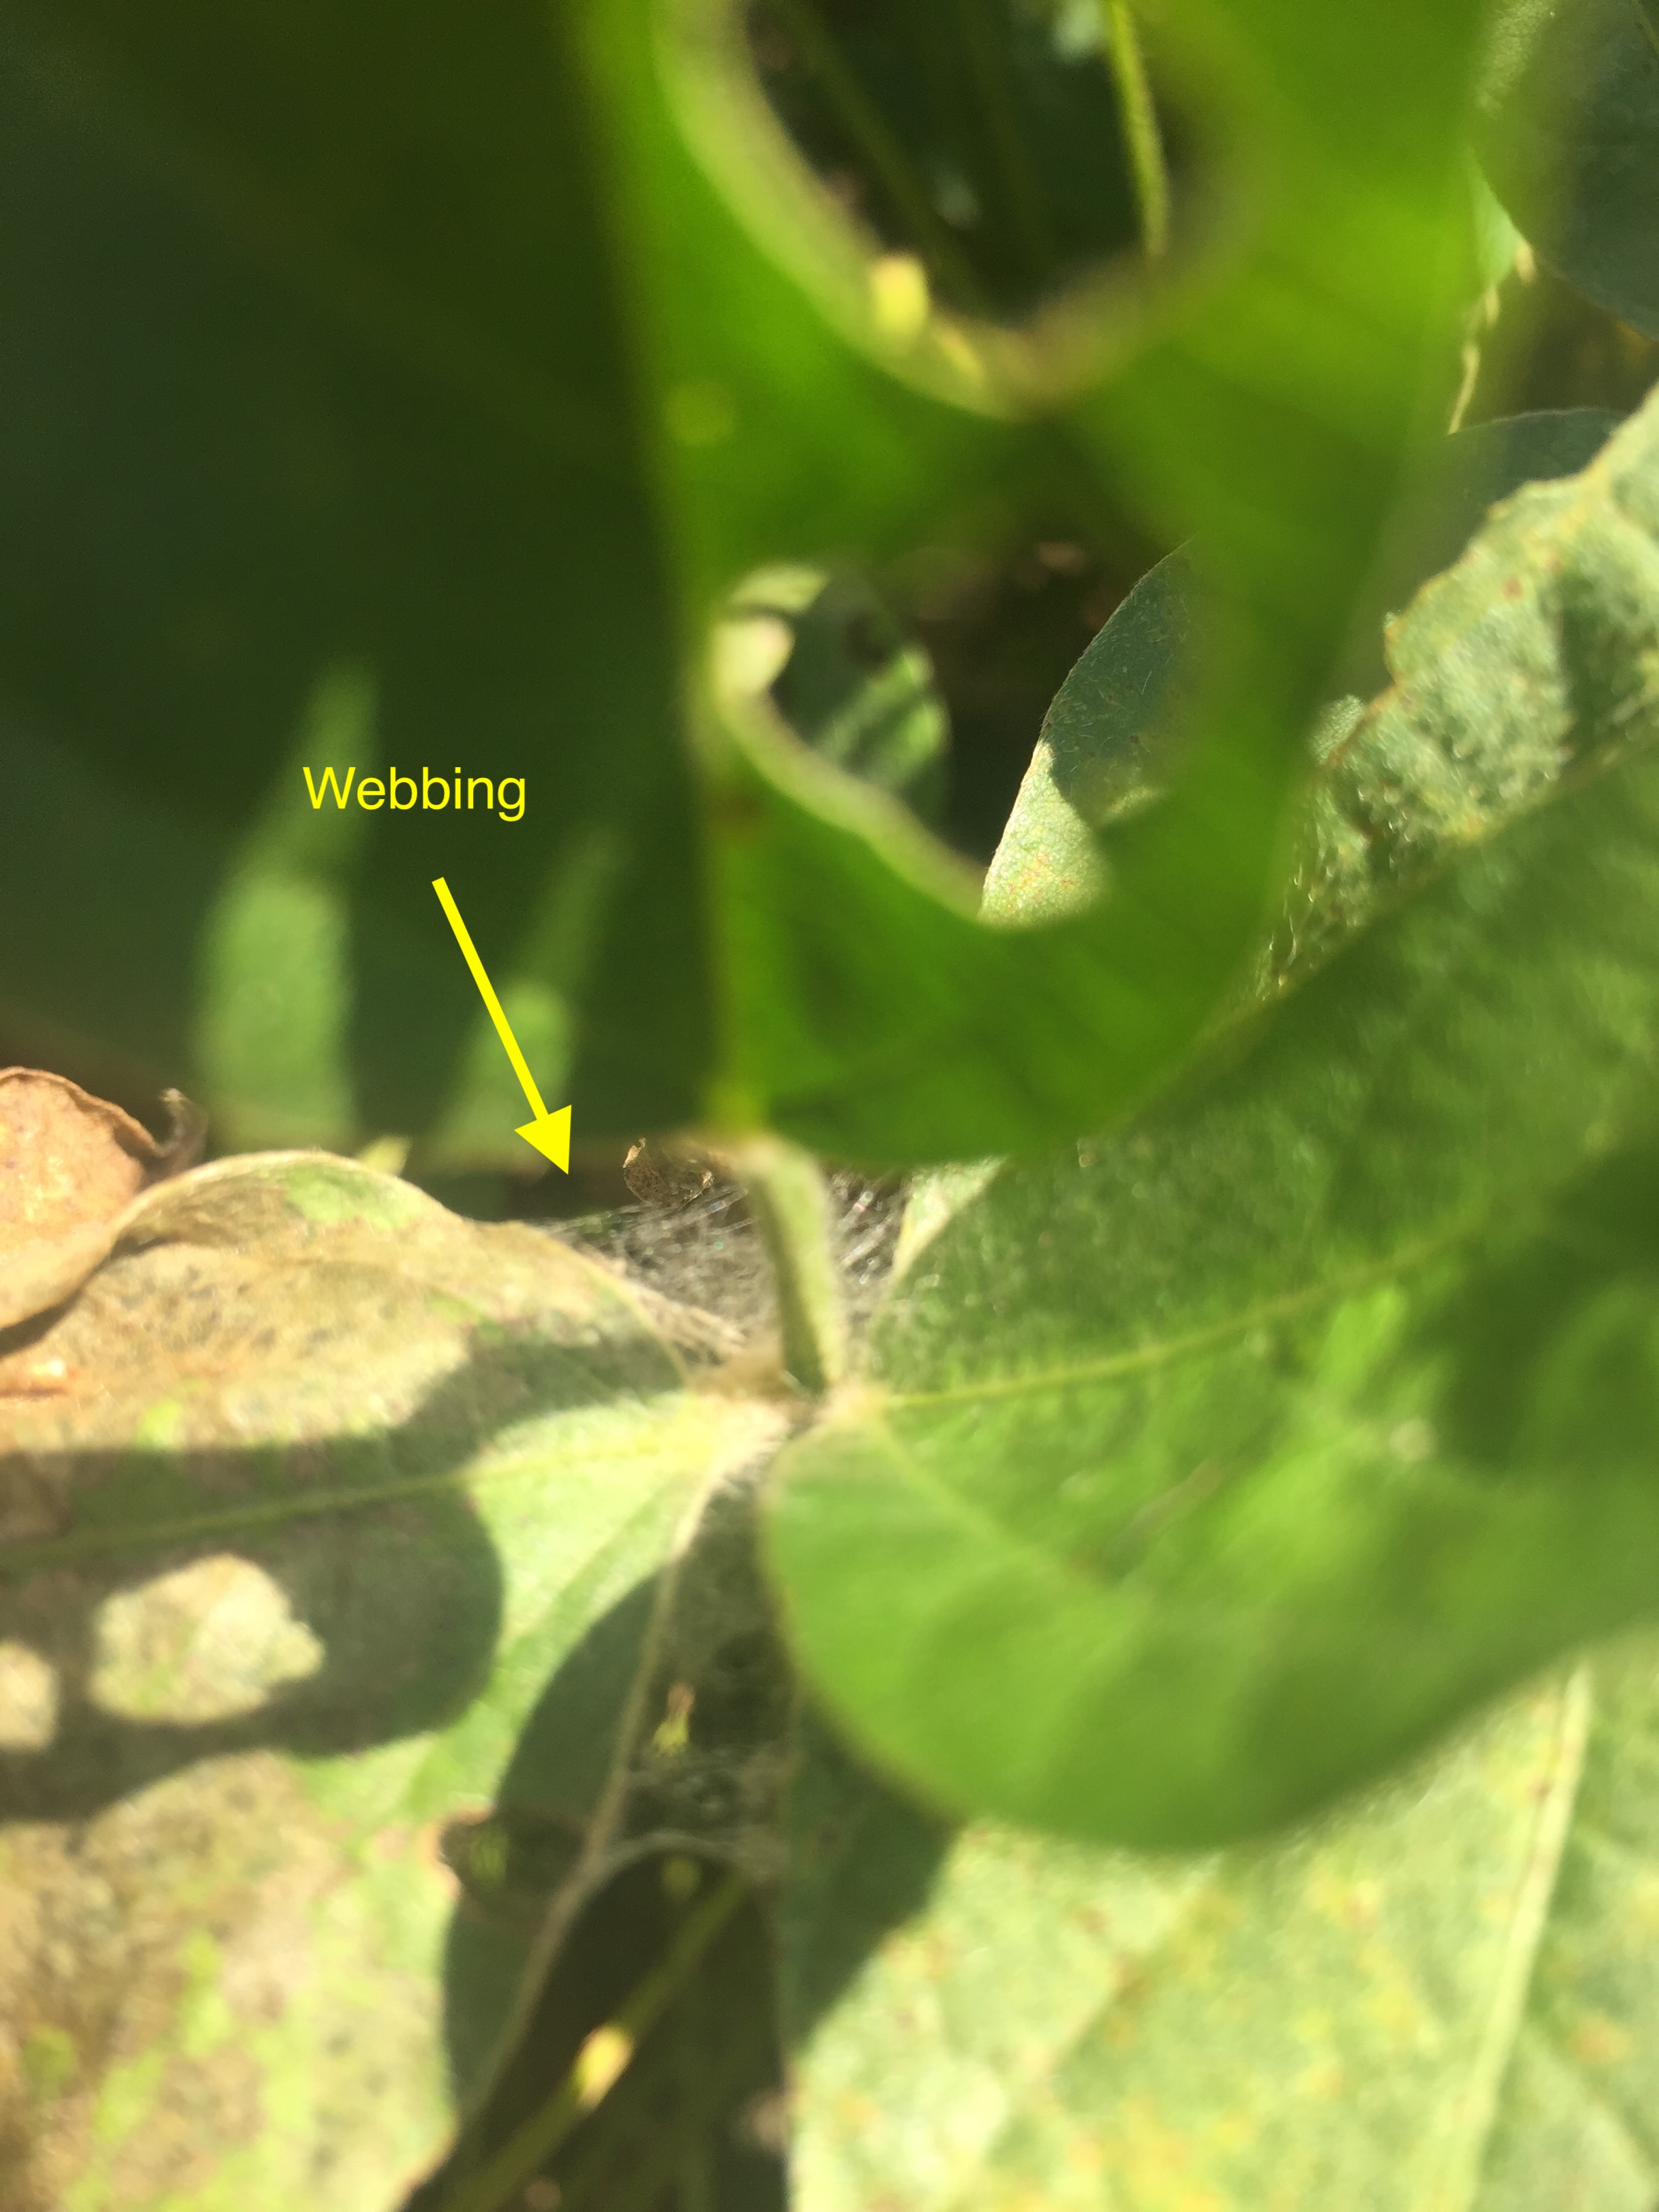 Soybean leaf with webbing from fungal growth